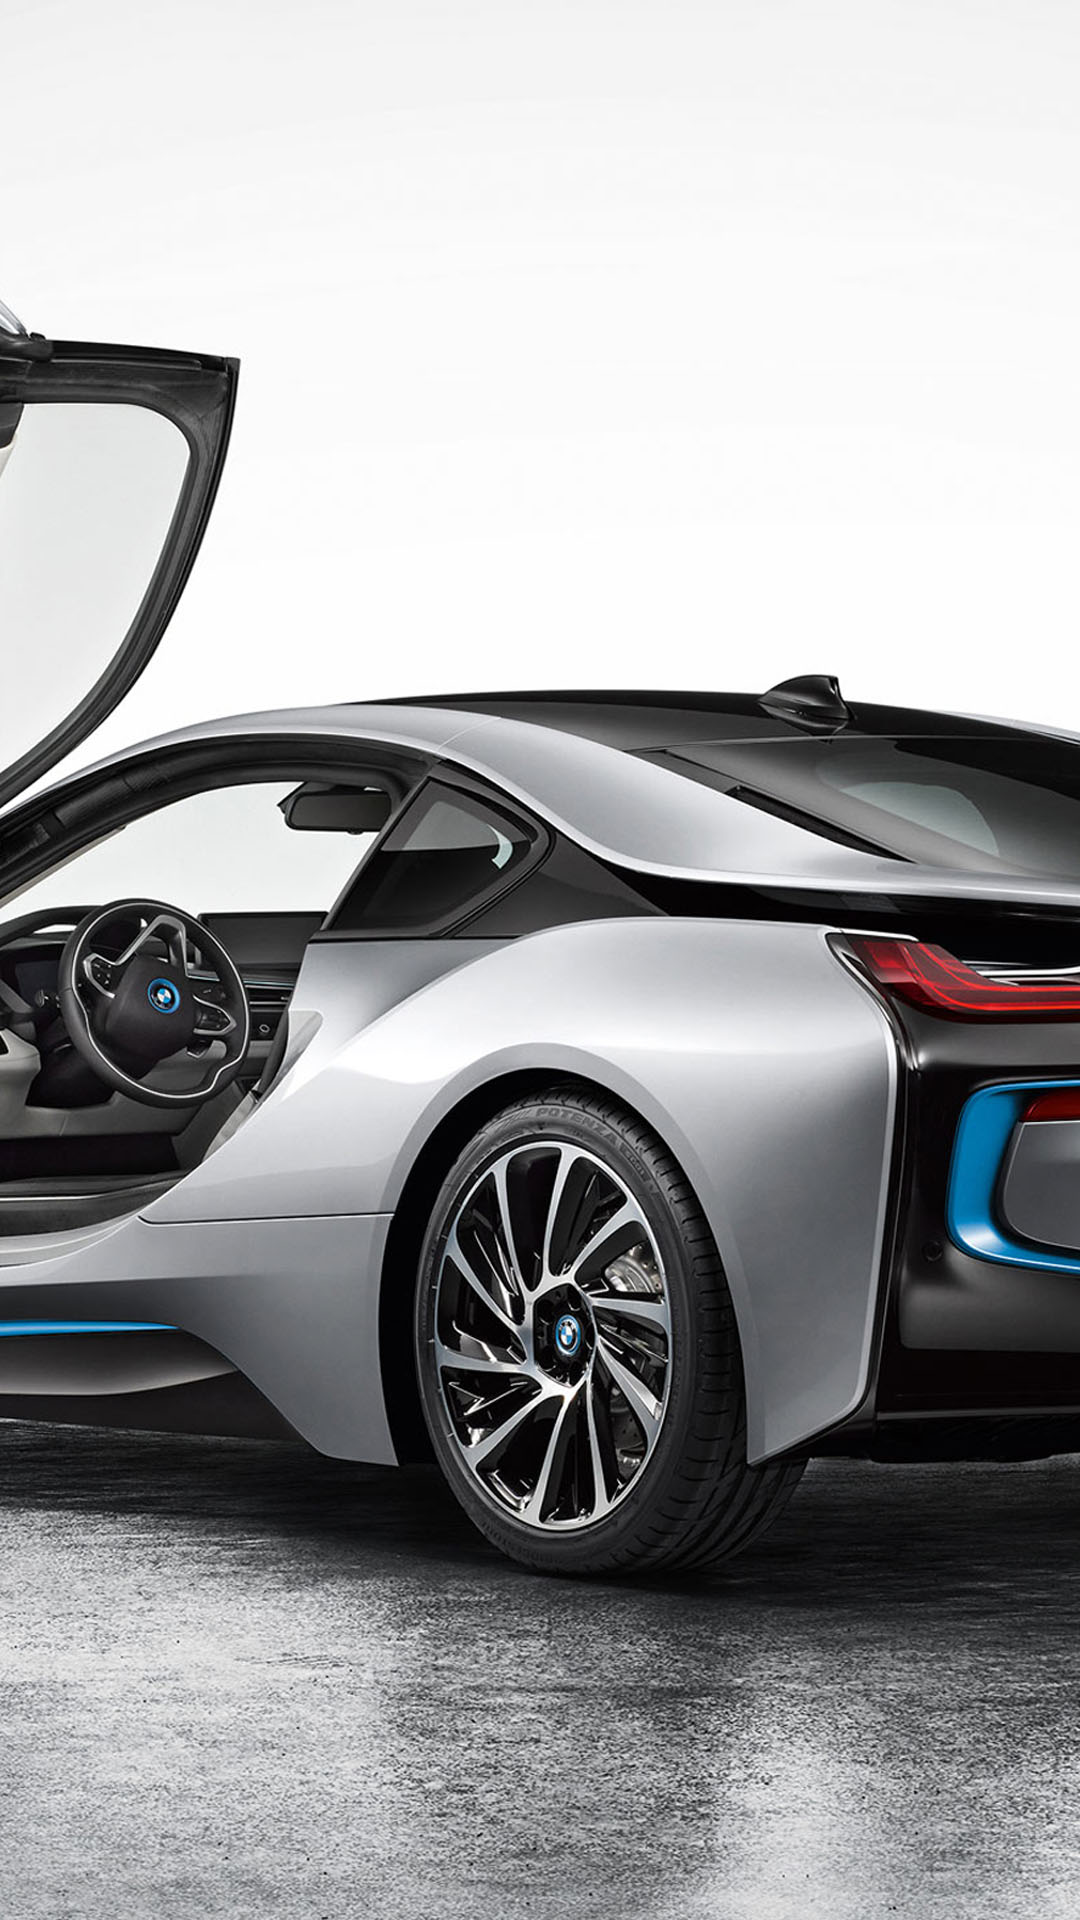 Wallpaper Wiki Bmw I8 Back Silver Iphone Hd Images Pic Wpc008852